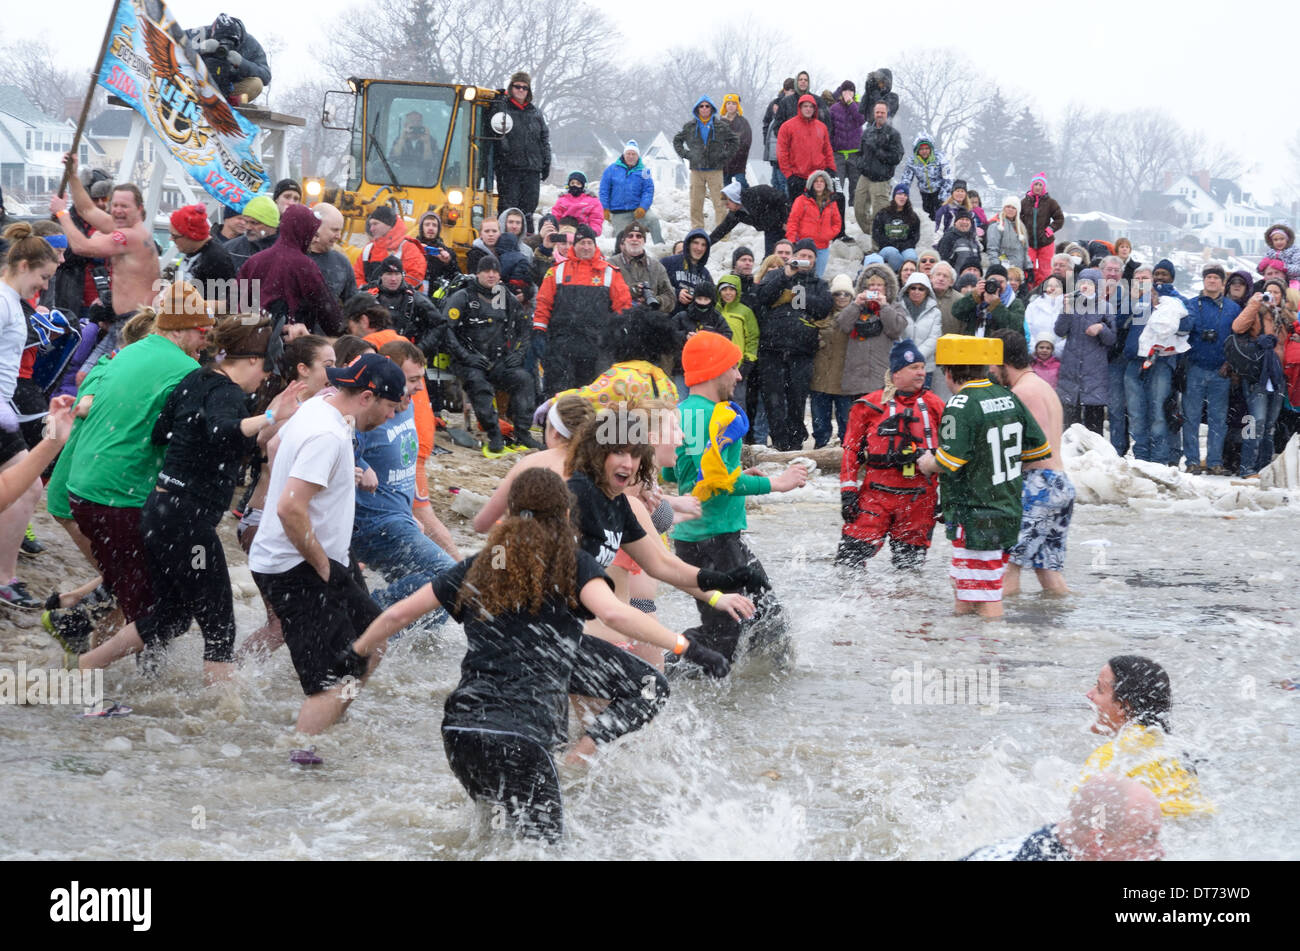 Fans watch swimmers splash around in ice water at Polar Plunge. - Stock Image